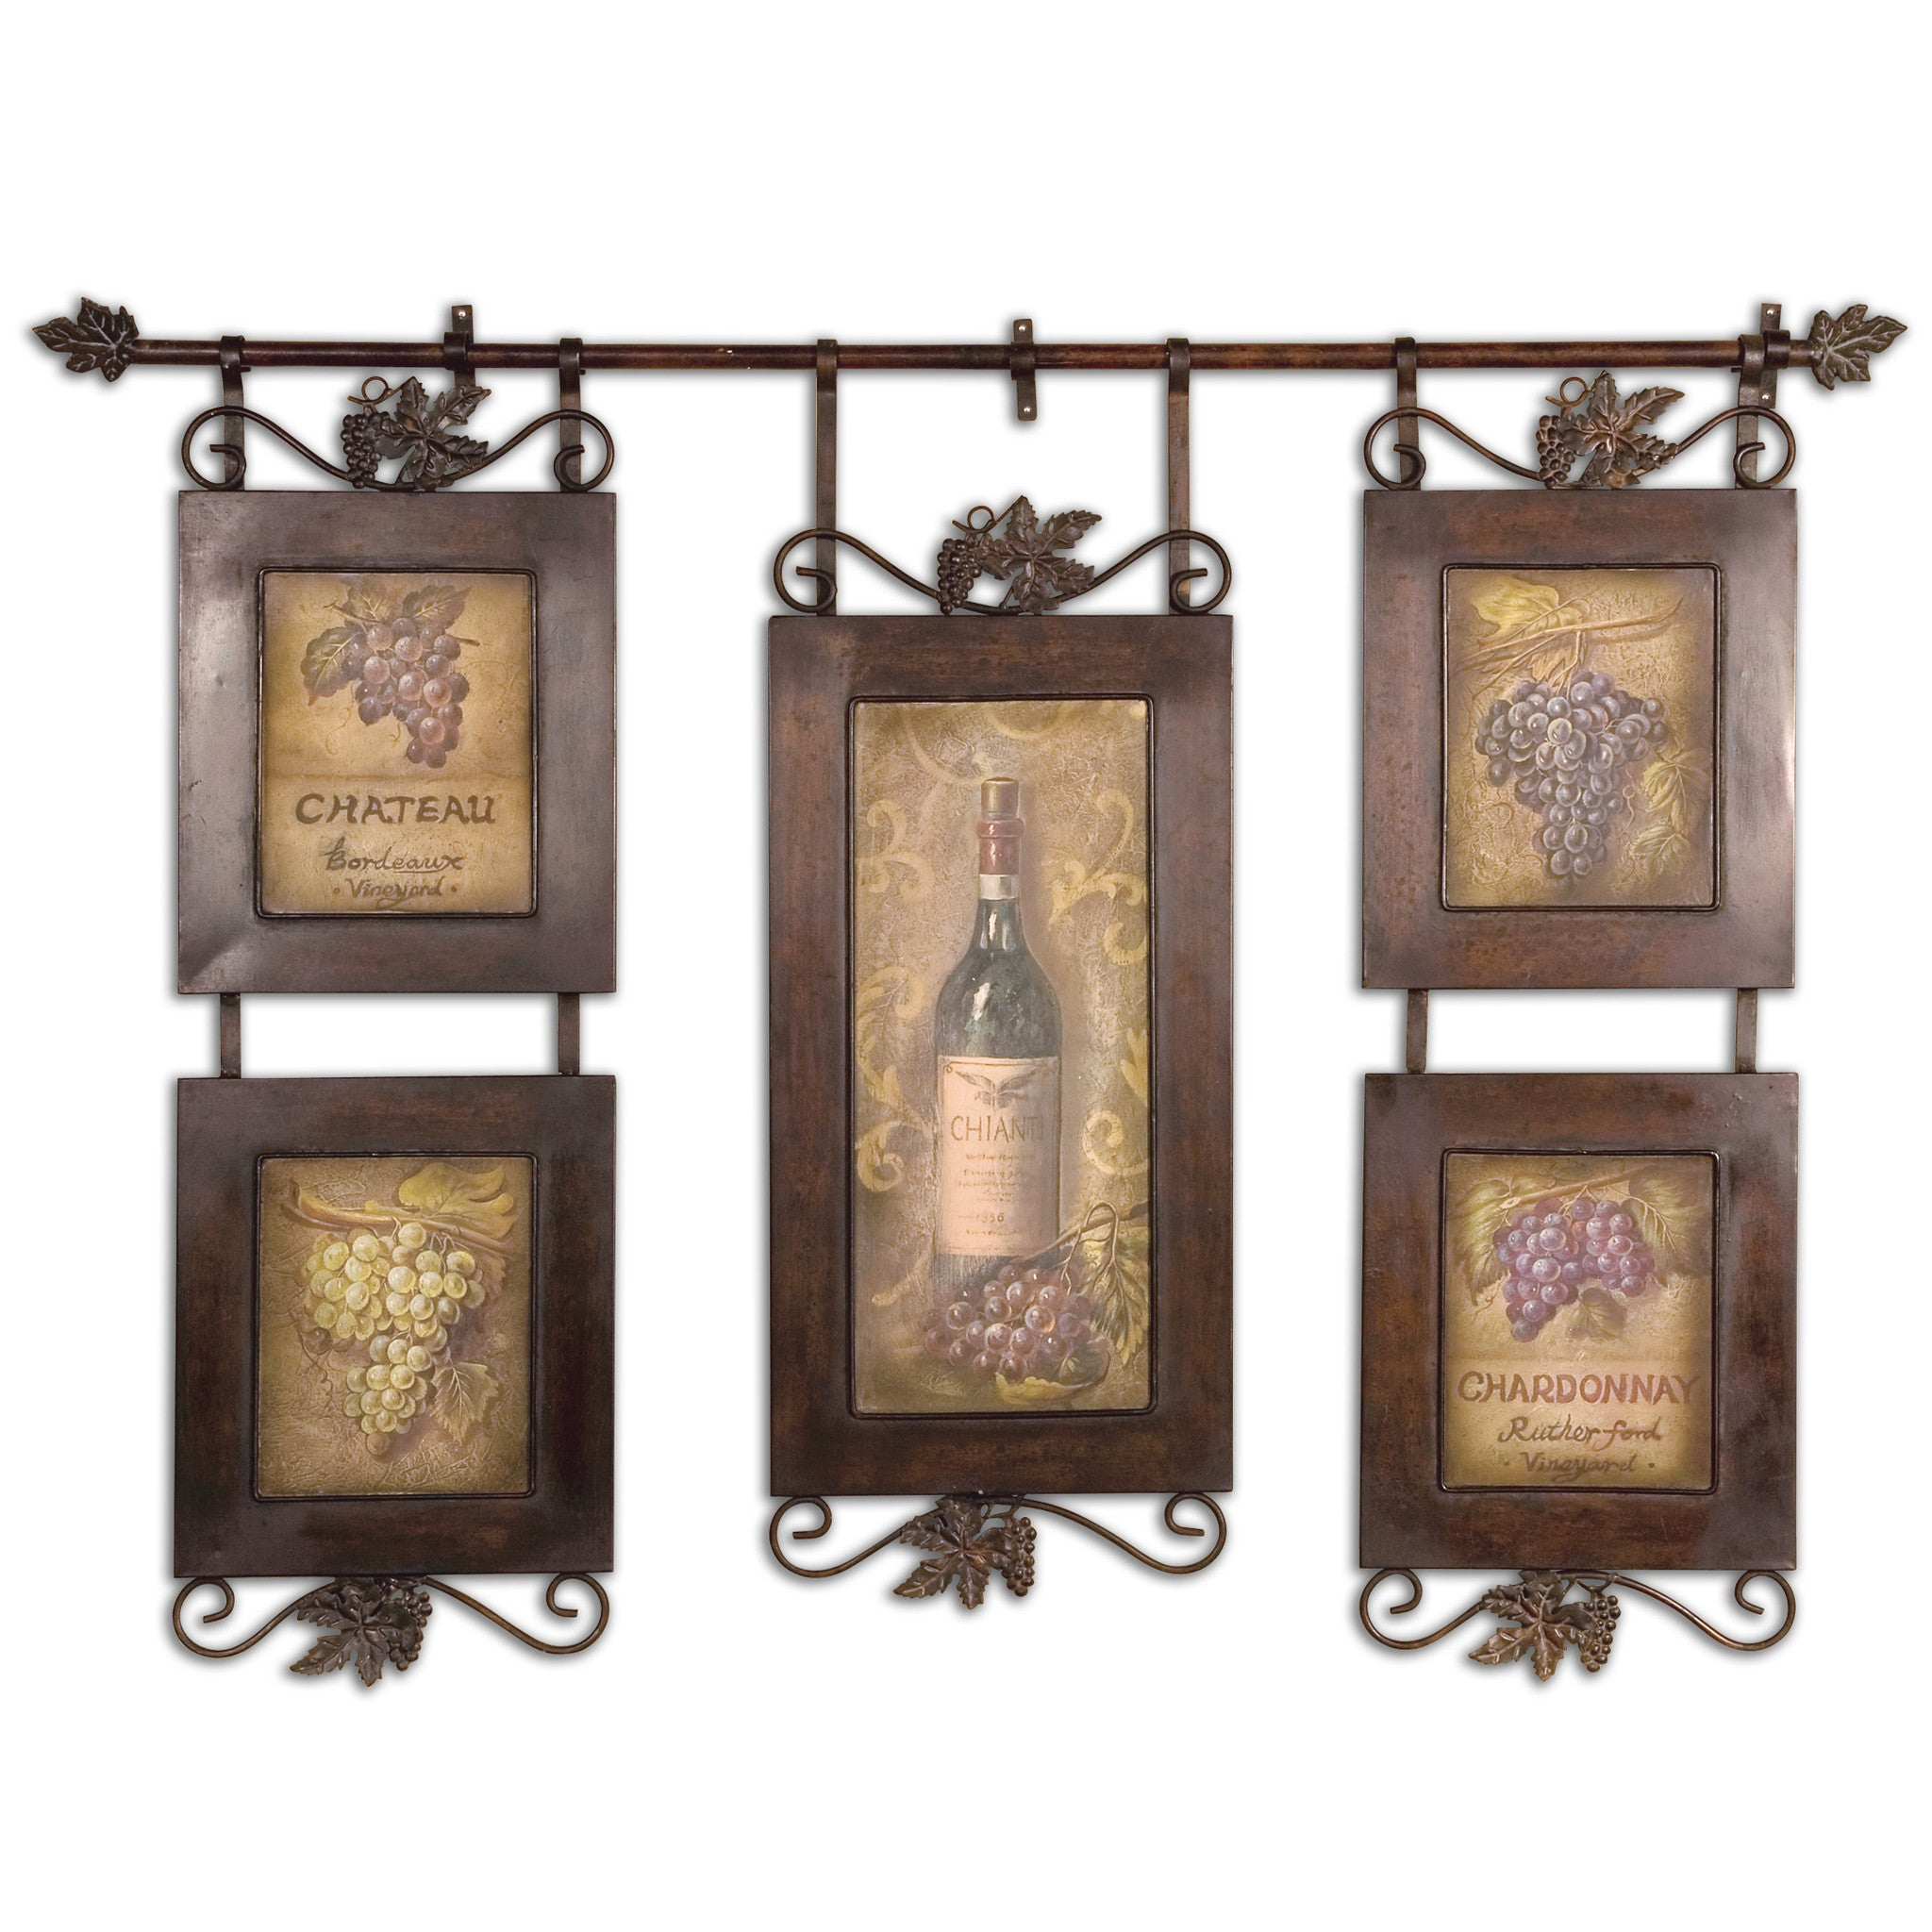 Bronze curtain rod supports collection of 5 paintings of wine and grapes